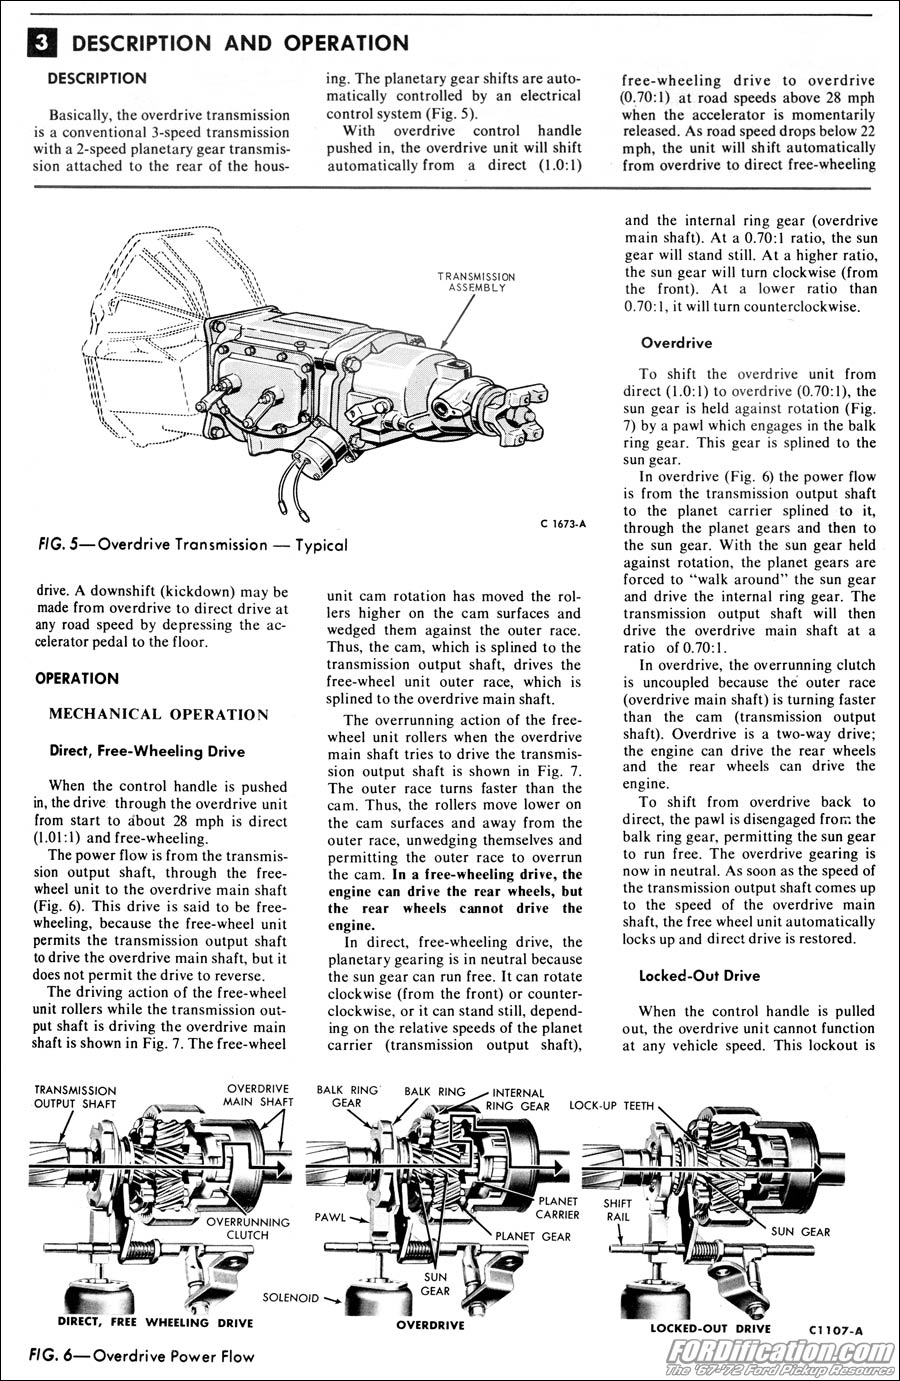 Manual Transmission Manual Guide